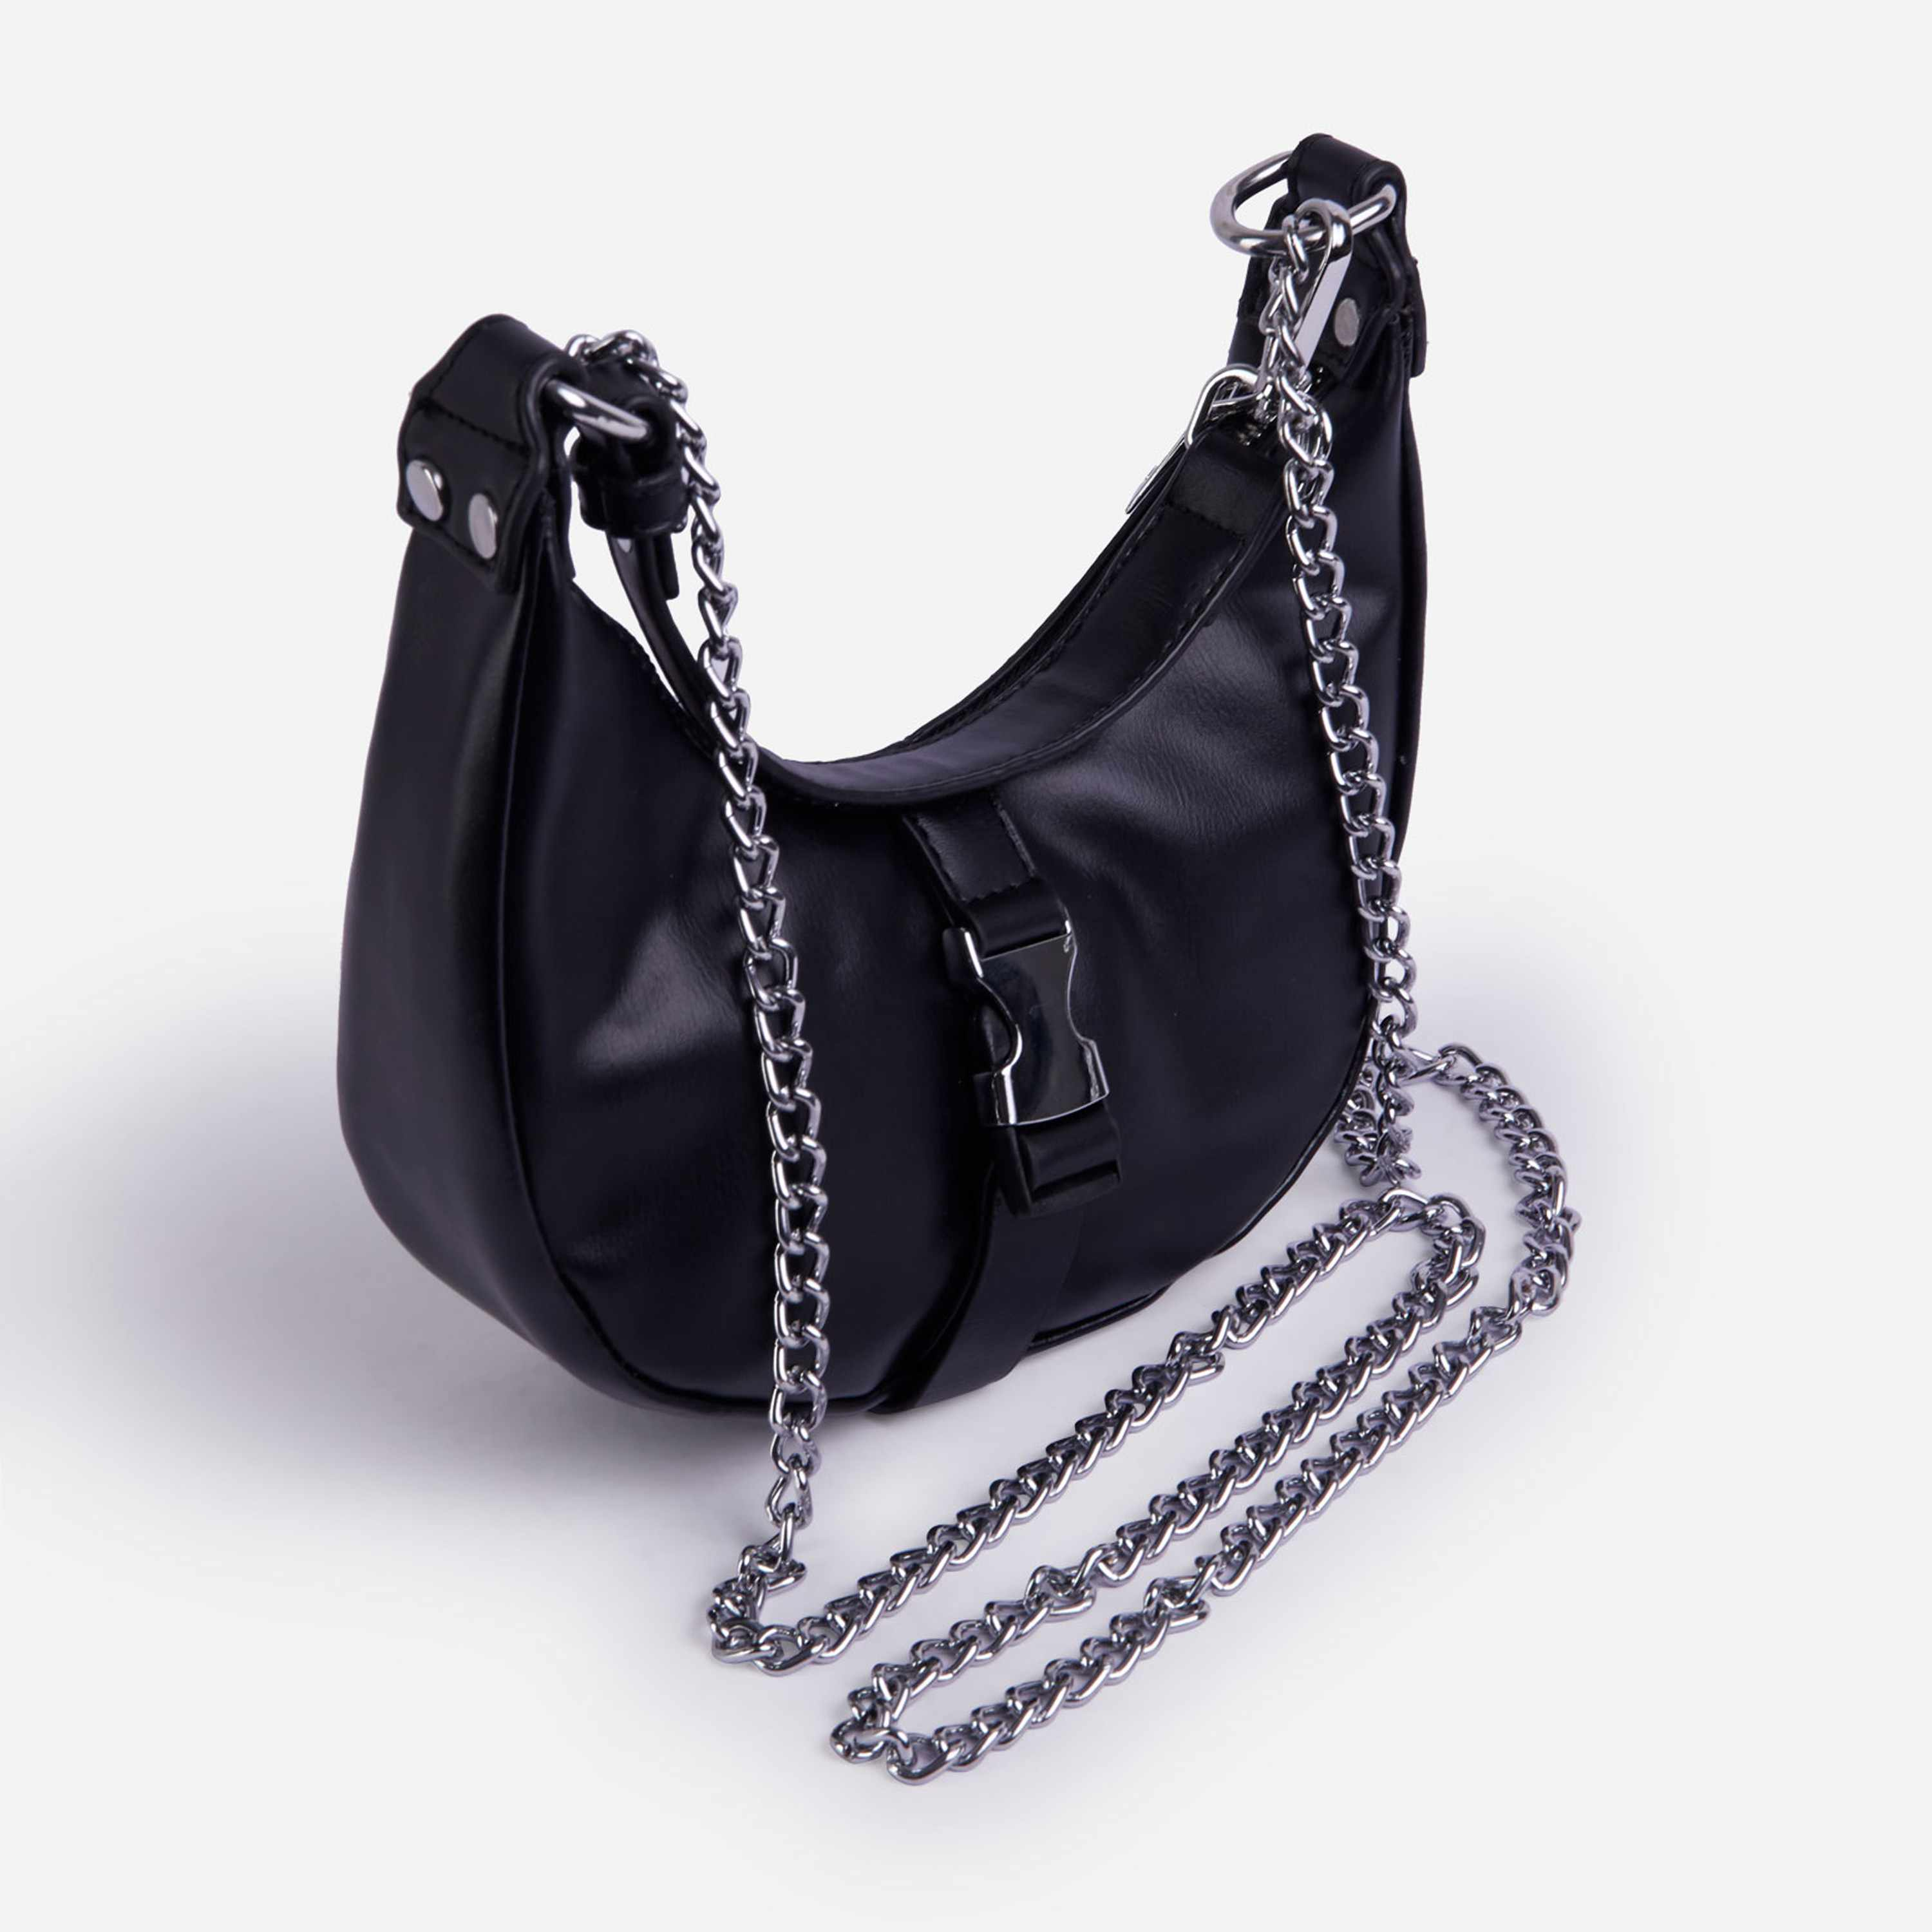 Buckle & Chain Detail Shoulder Bag in Black Nylon